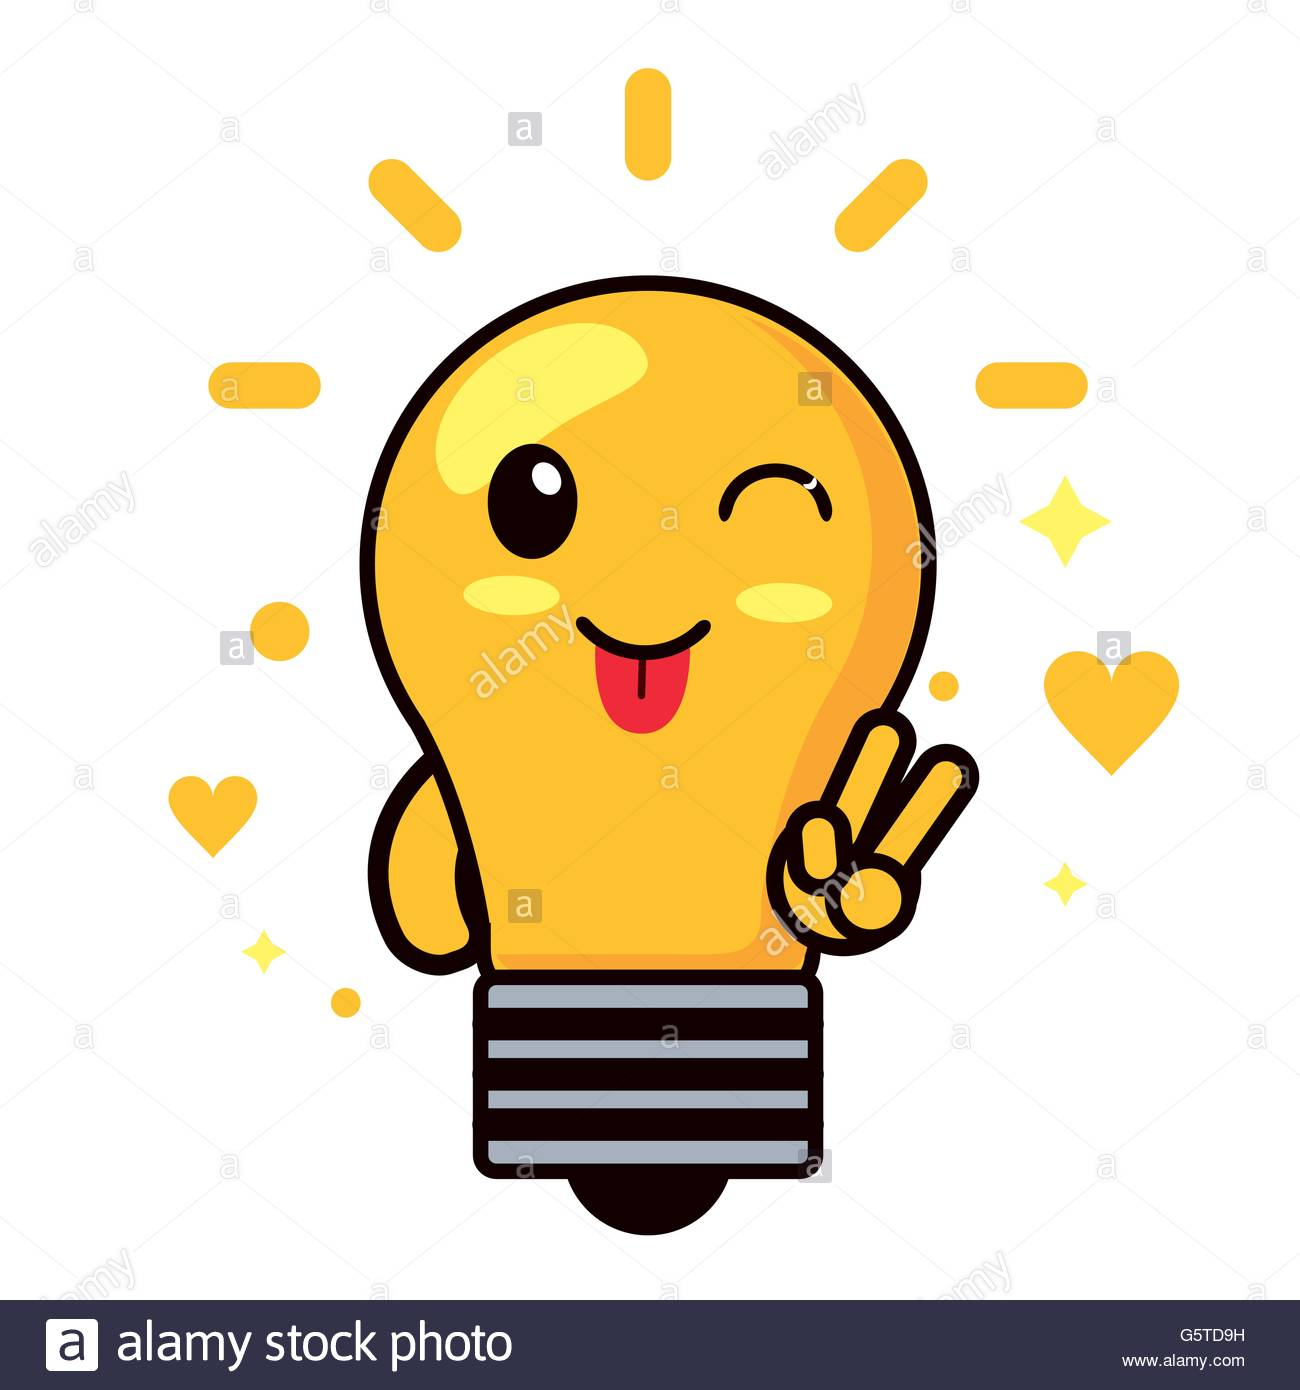 1300x1390 Kawaii Icon. Light Bulb Cartoon Design. Vector Graphic Stock